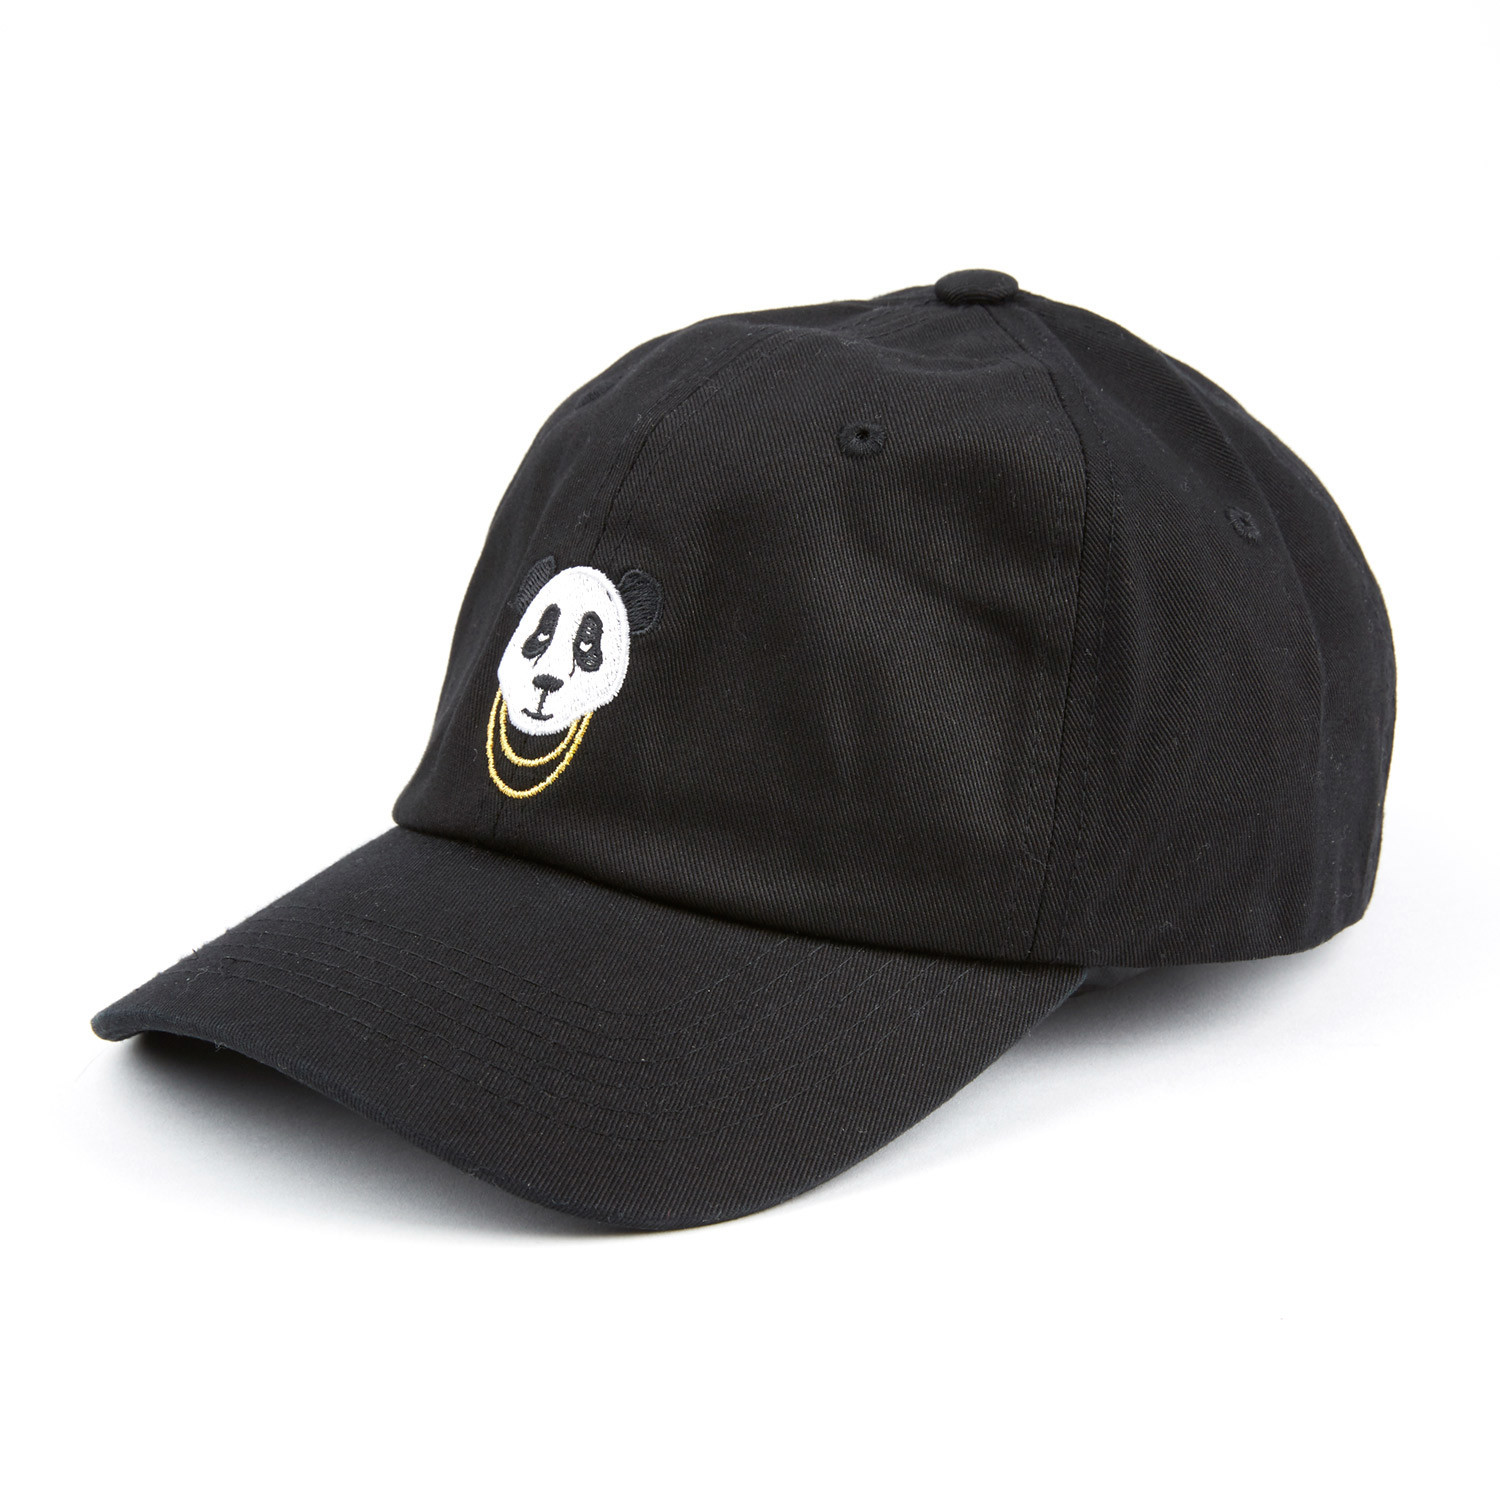 b20c795785572f15e170f42c2dba4f40_large?1468614771 panda dad cap black any memes touch of modern